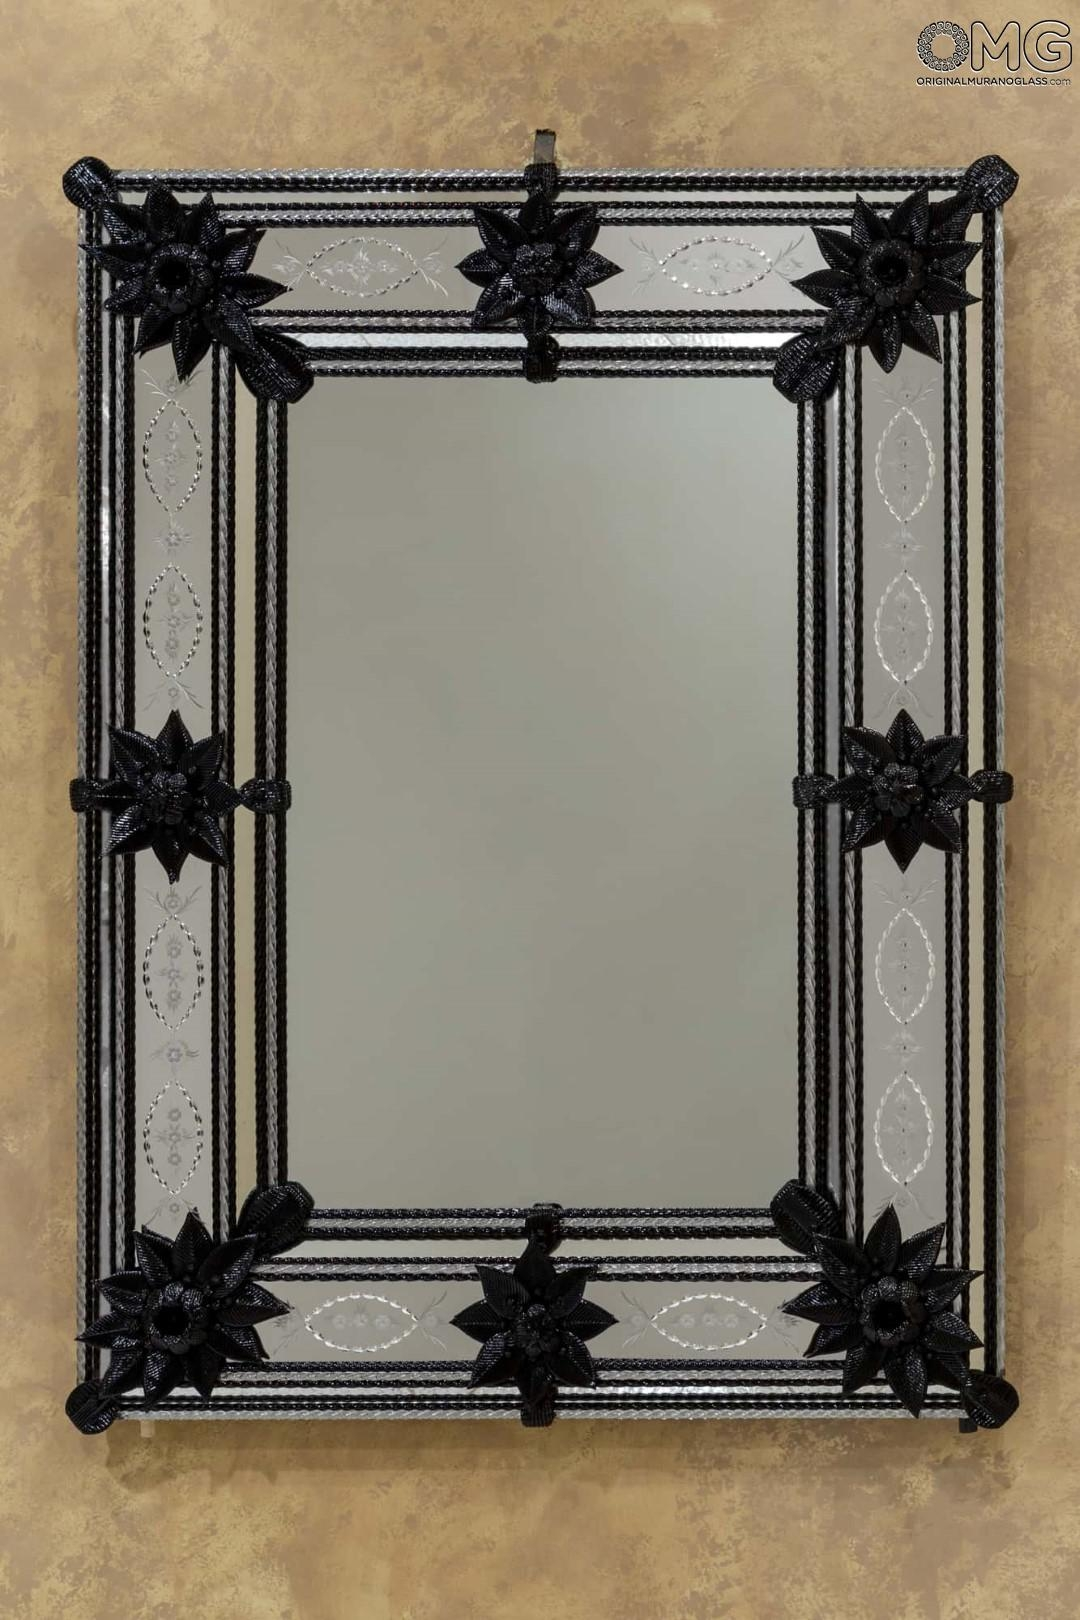 venetian mirrors original from murano venice italy big collection inside venetian mirror for sale image